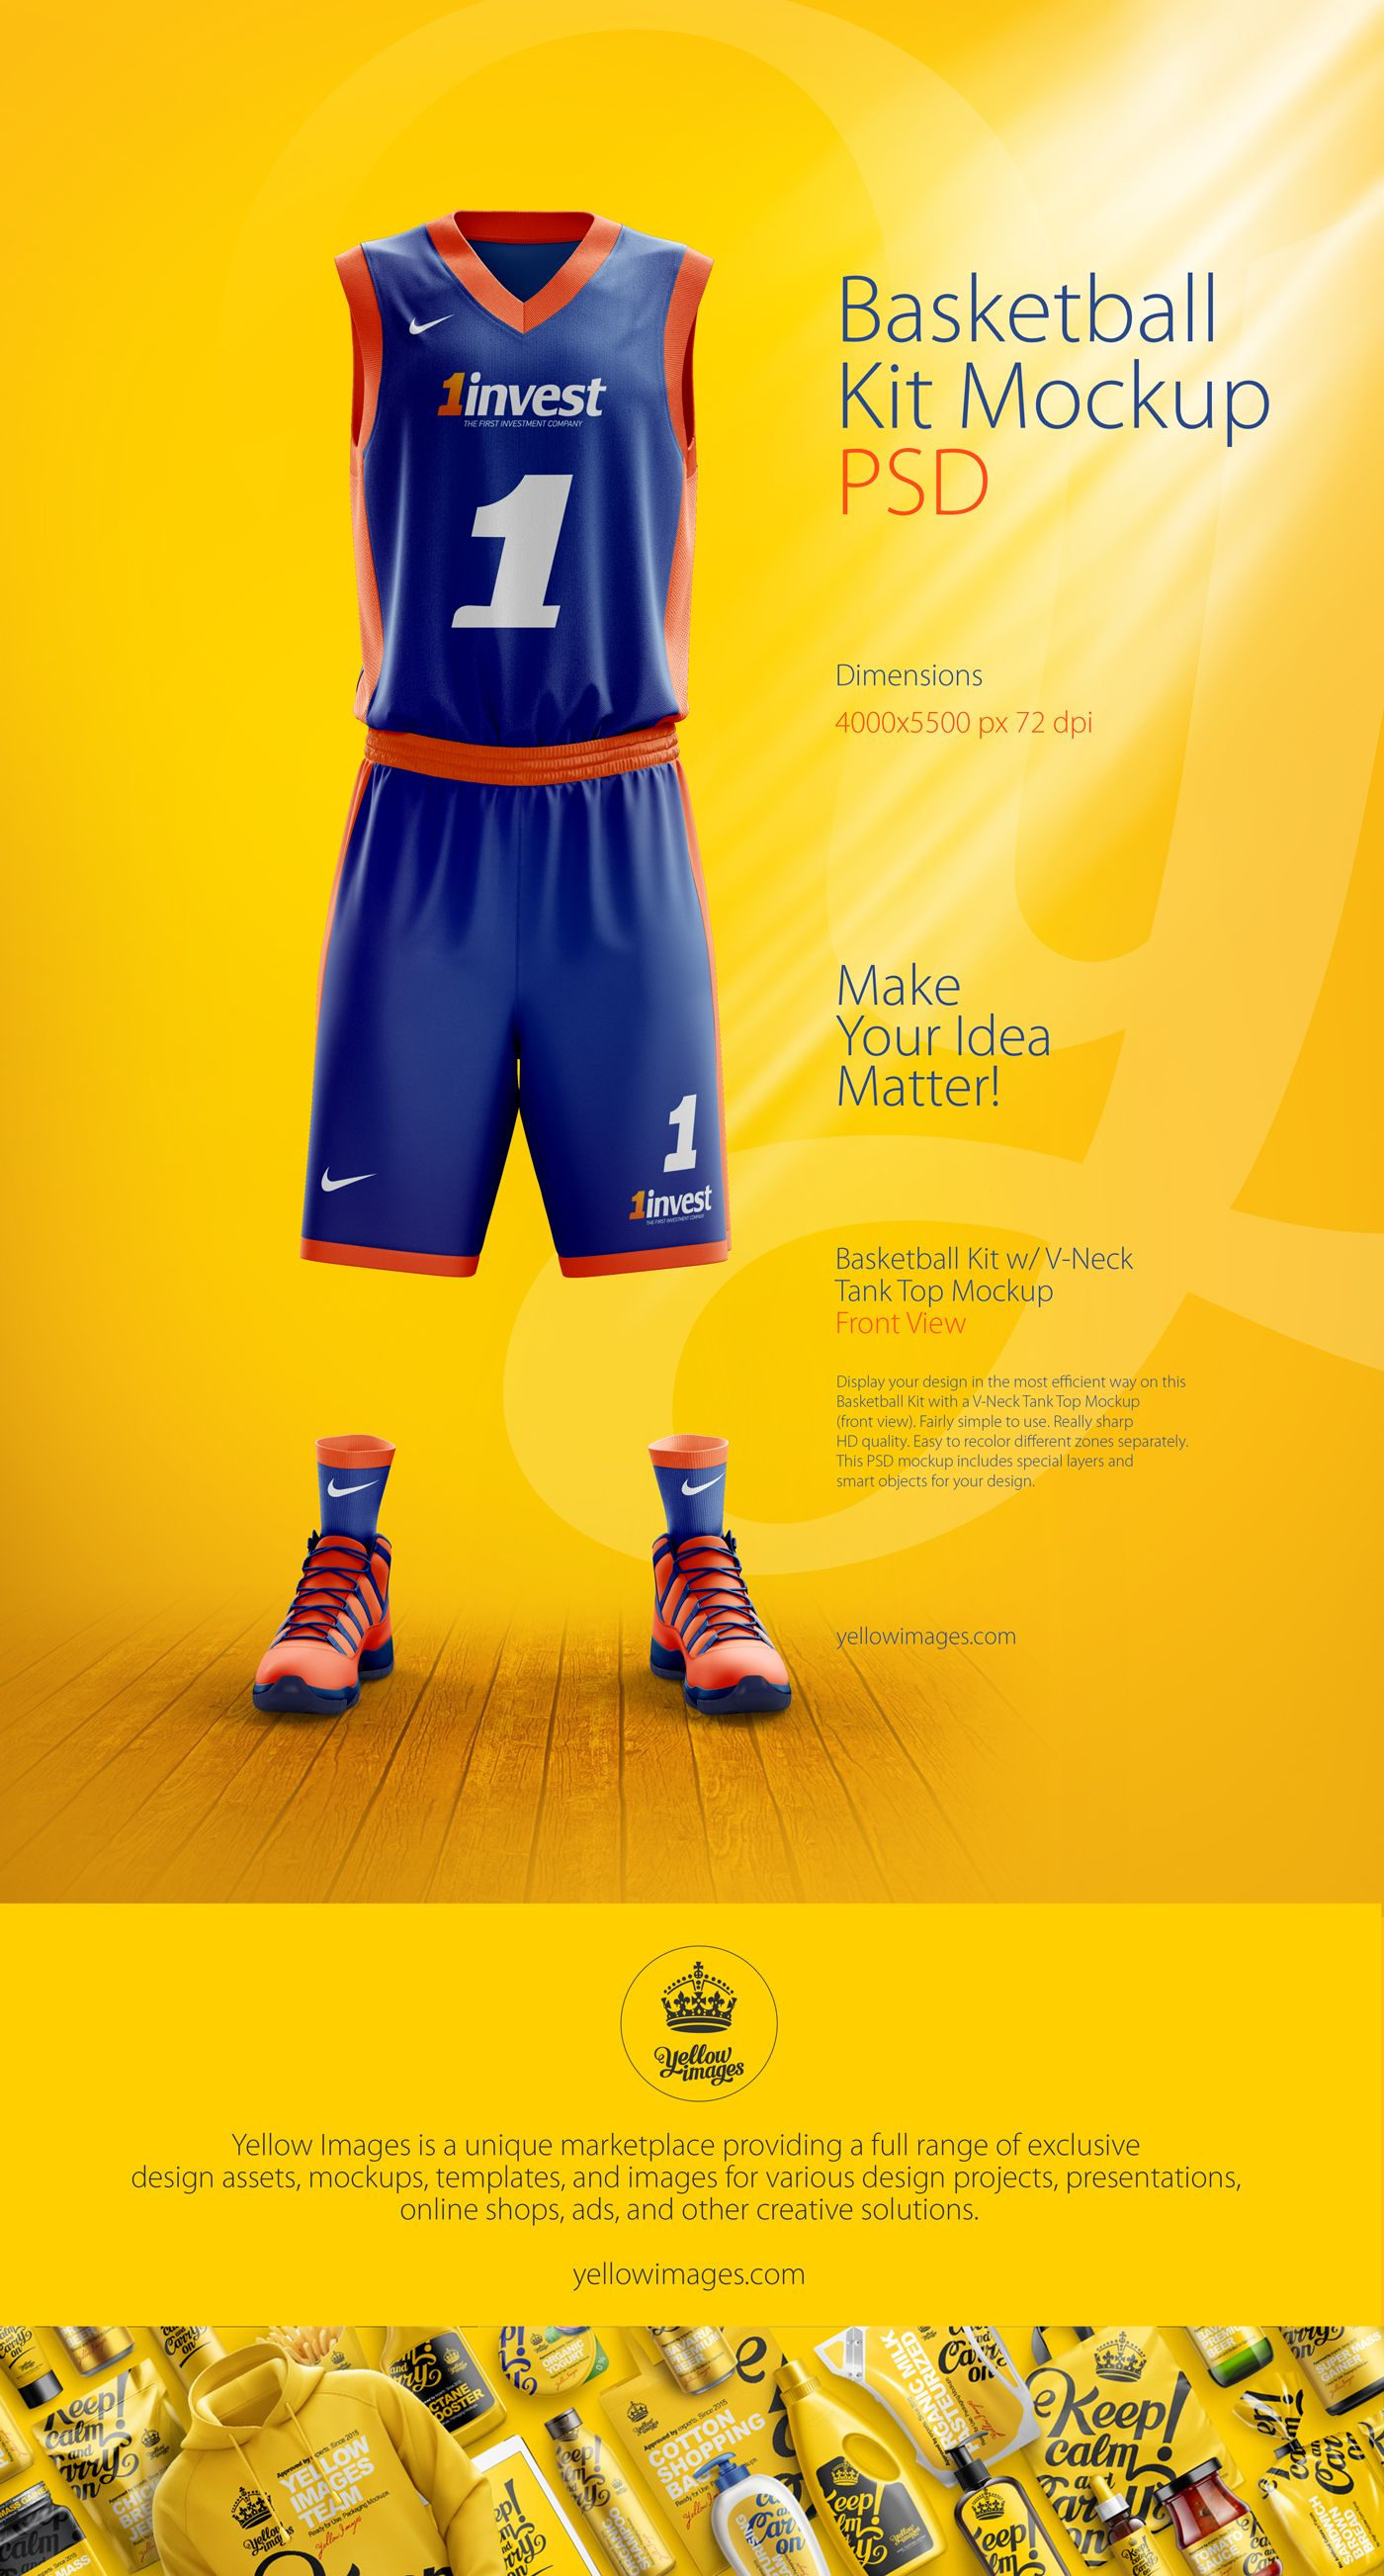 Download Basketball Kit Mockup Psd On Behance Basketball Kit Basketball Uniforms Design Basketball